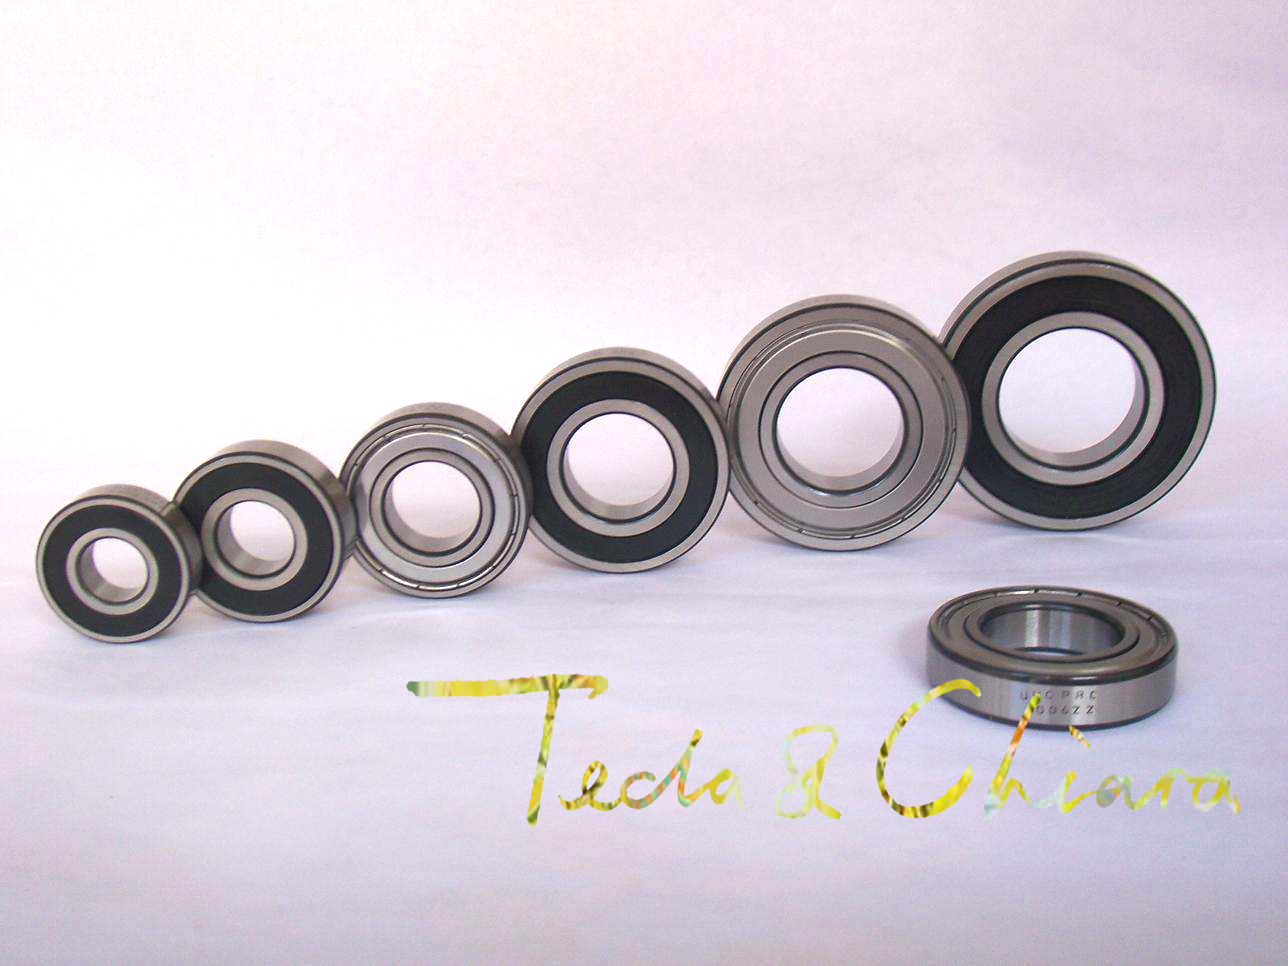 686 686ZZ 686RS 686-2Z 686Z 686-2RS ZZ RS RZ 2RZ Deep Groove Ball Bearings 6 x 13 x 5mm High Quality 6704 6704zz 6704rs 6704 2z 6704z 6704 2rs zz rs rz 2rz deep groove ball bearings 20 x 27 x 4mm high quality